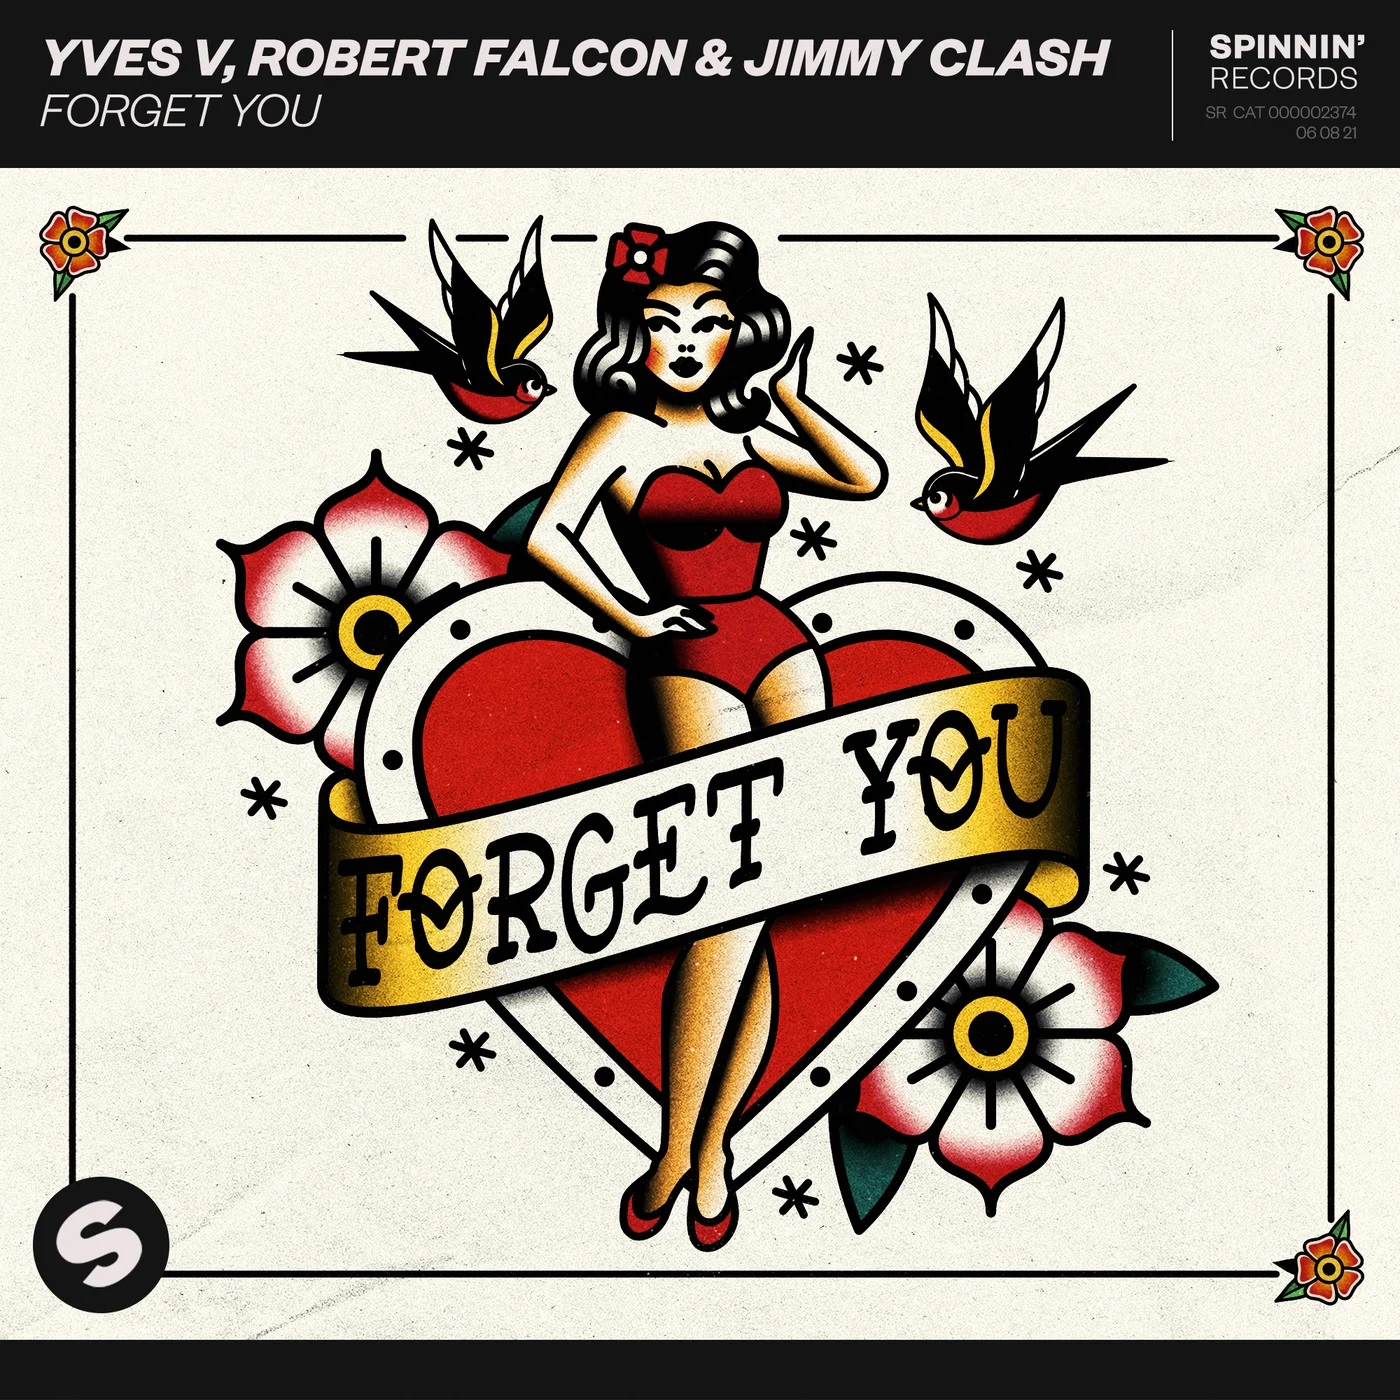 Yves V, Robert Falcon & Jimmy Clash - Forget You [Spinnin' Records]